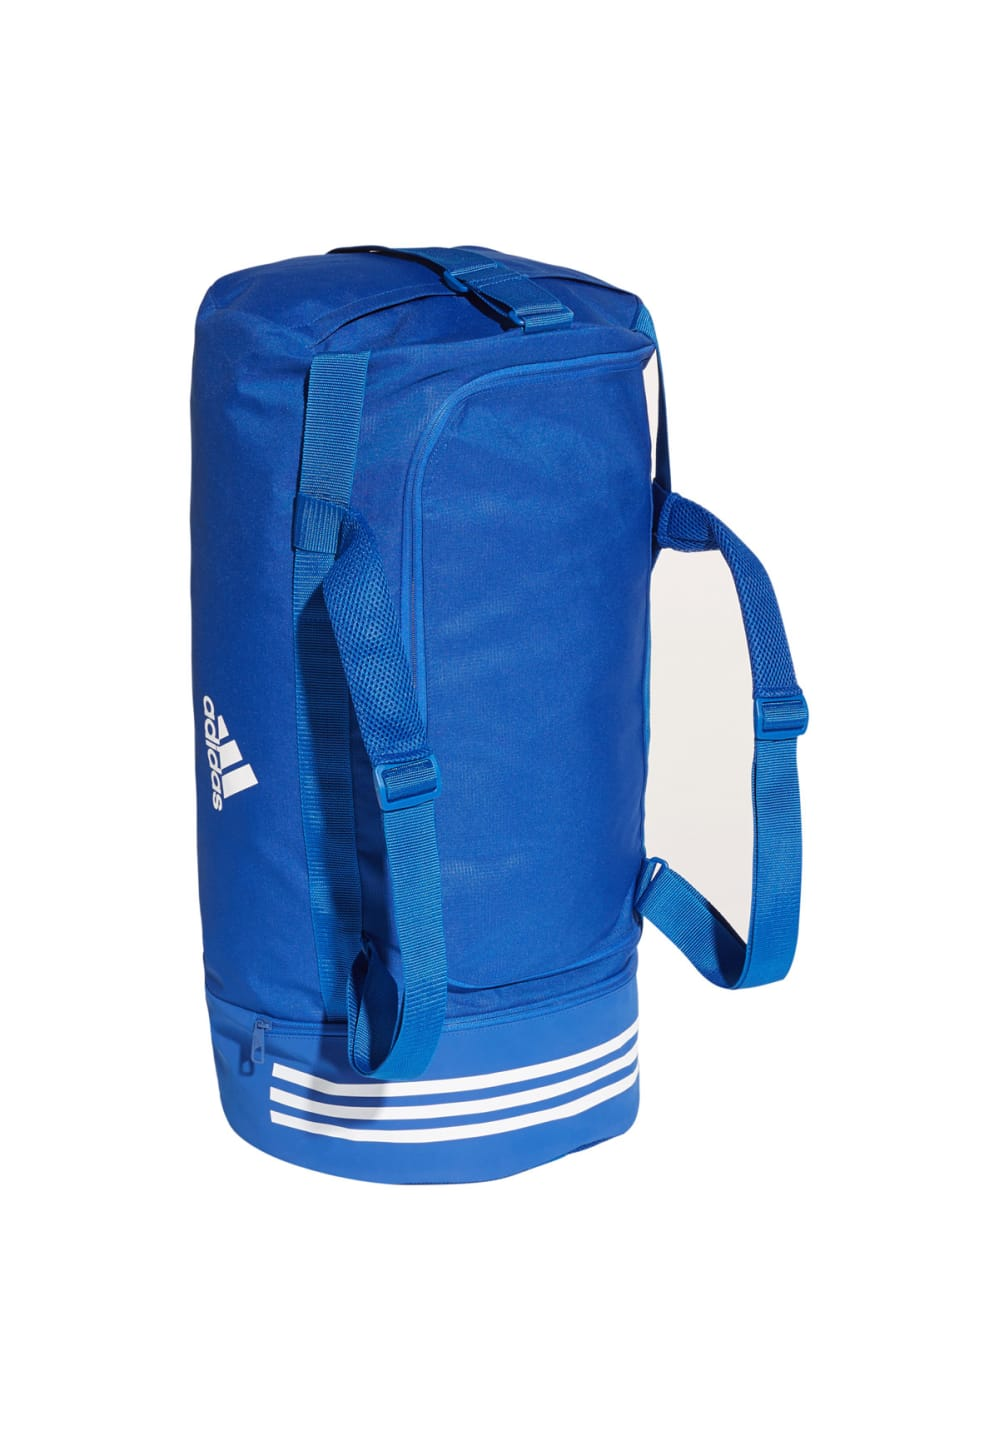 b3cfa20cead9 Next. -50%. This product is currently out of stock. adidas. Convertible 3-Stripes  Duffel Bag Large ...